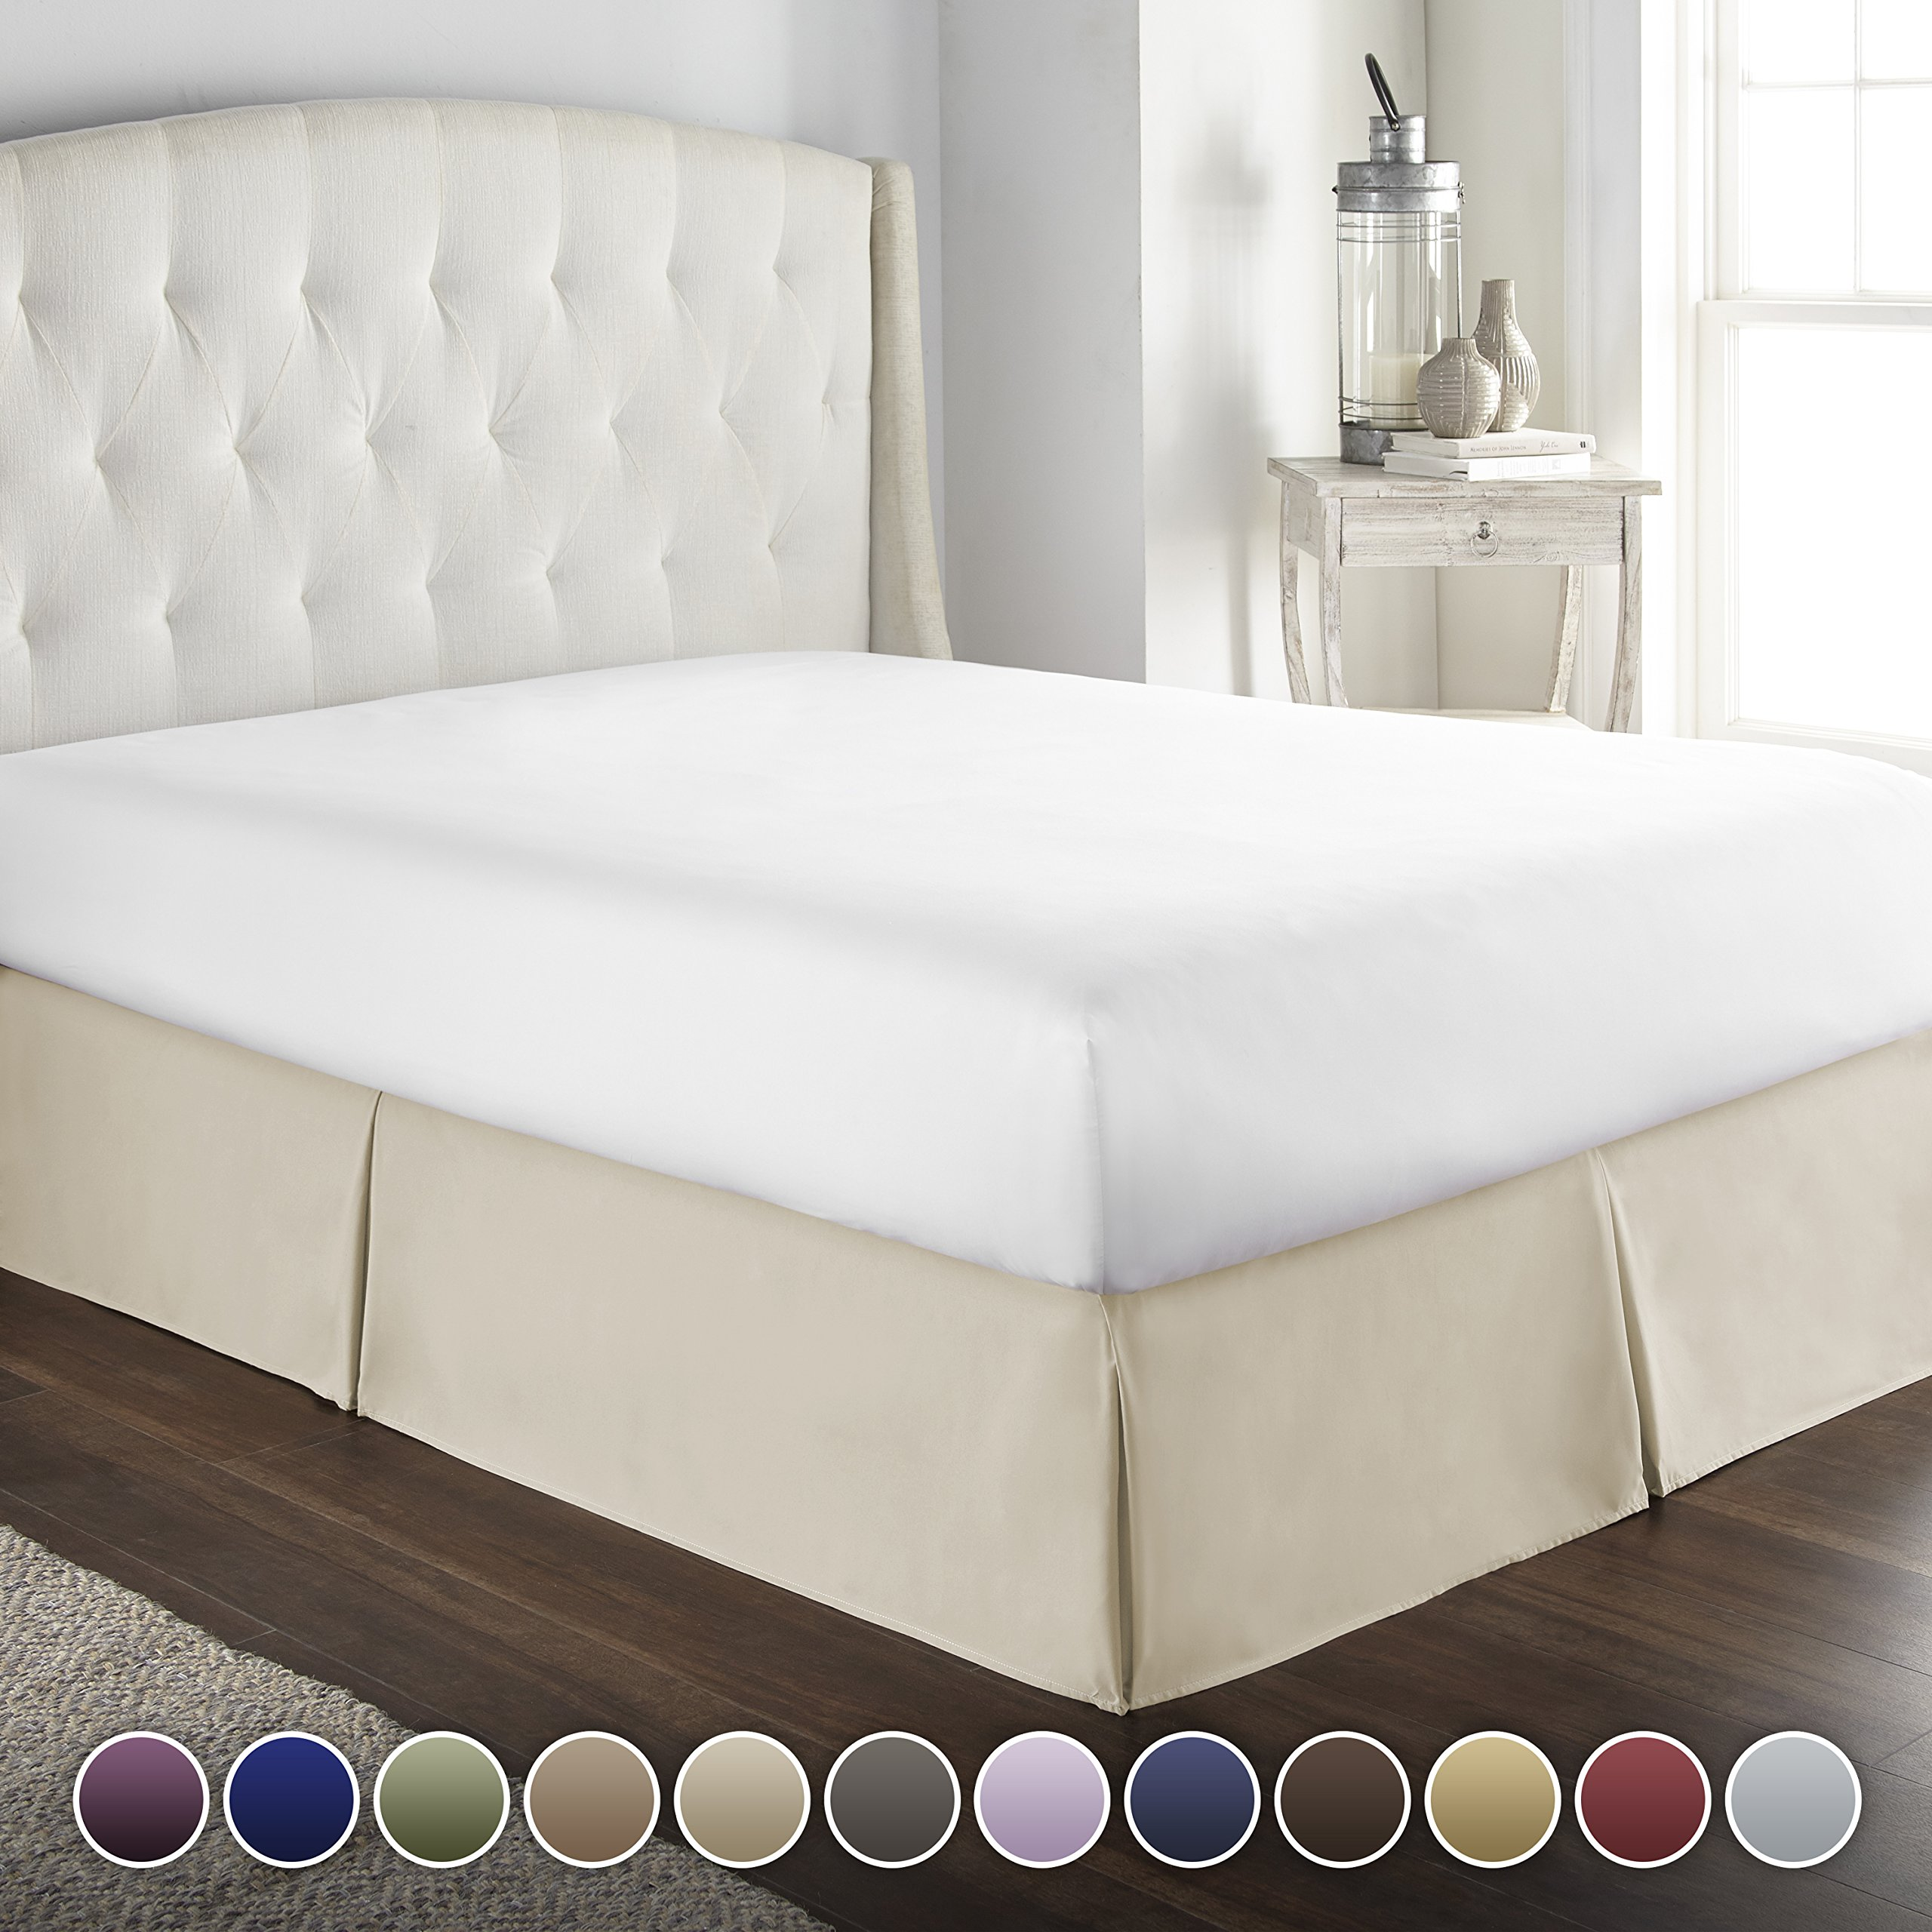 HC COLLECTION Hotel Luxury Bed Skirt/Dust Ruffle 1800 Platinum Collection-14 inch Tailored Drop, Wrinkle & Fade Resistant, Linens (Full, Cream)